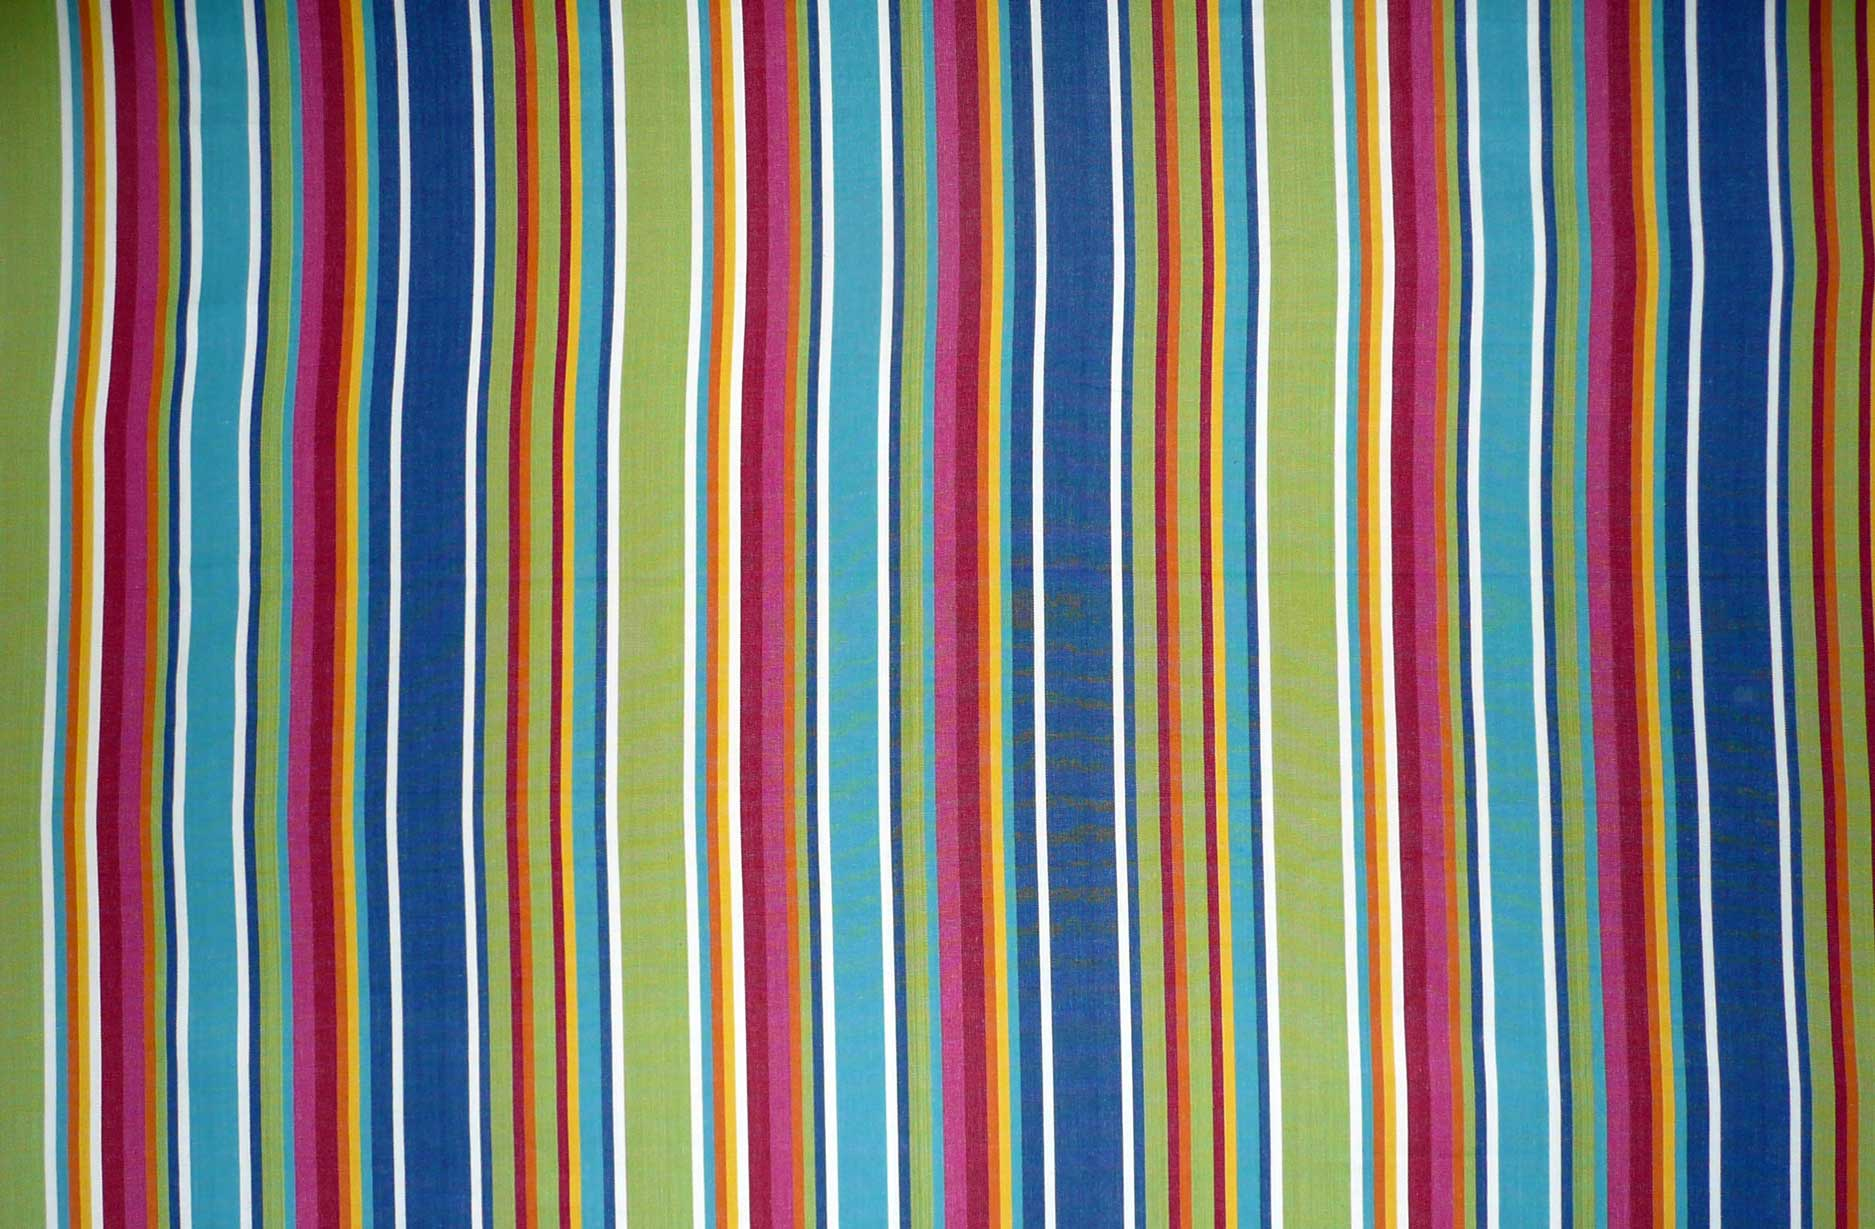 Rainbow Striped Fabrics | Striped Curtain Fabric | Upholstery Fabrics  - Climbing Stripes